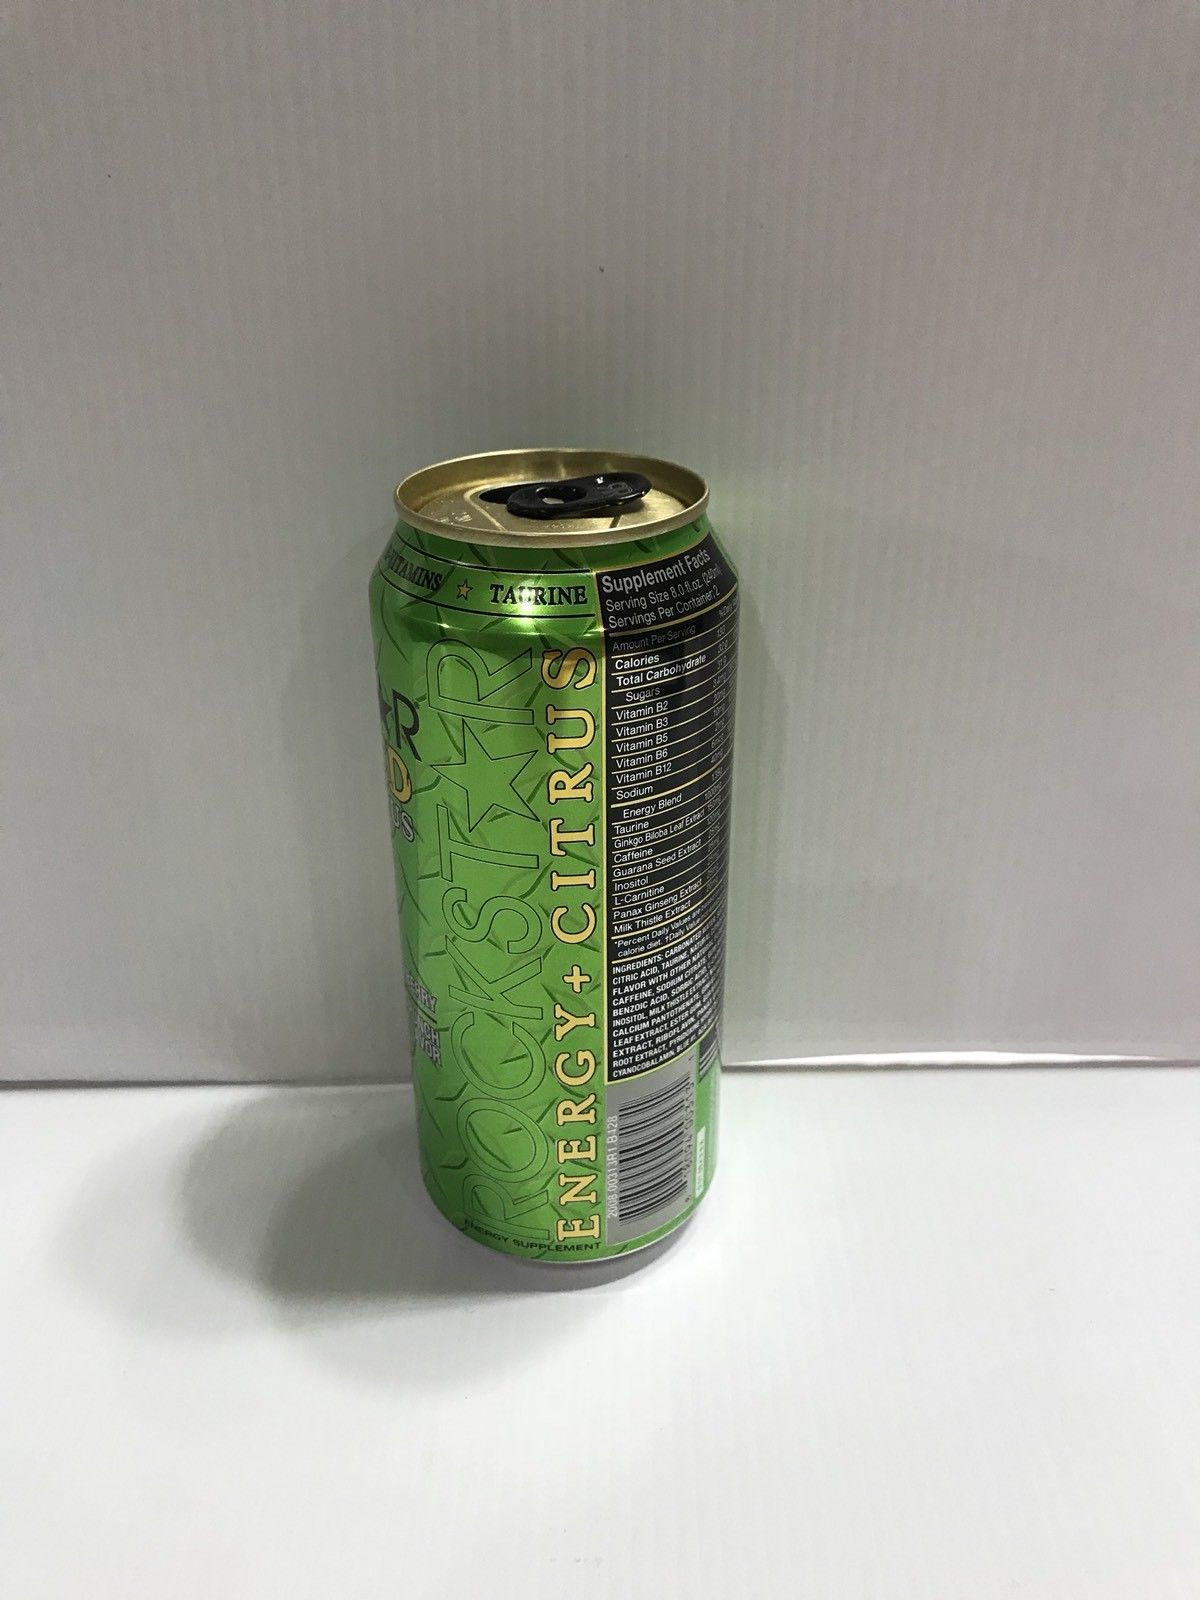 Rockstar Energy Drink Punched Açaí Berry 16oz *EMPTY* Collectors Can.